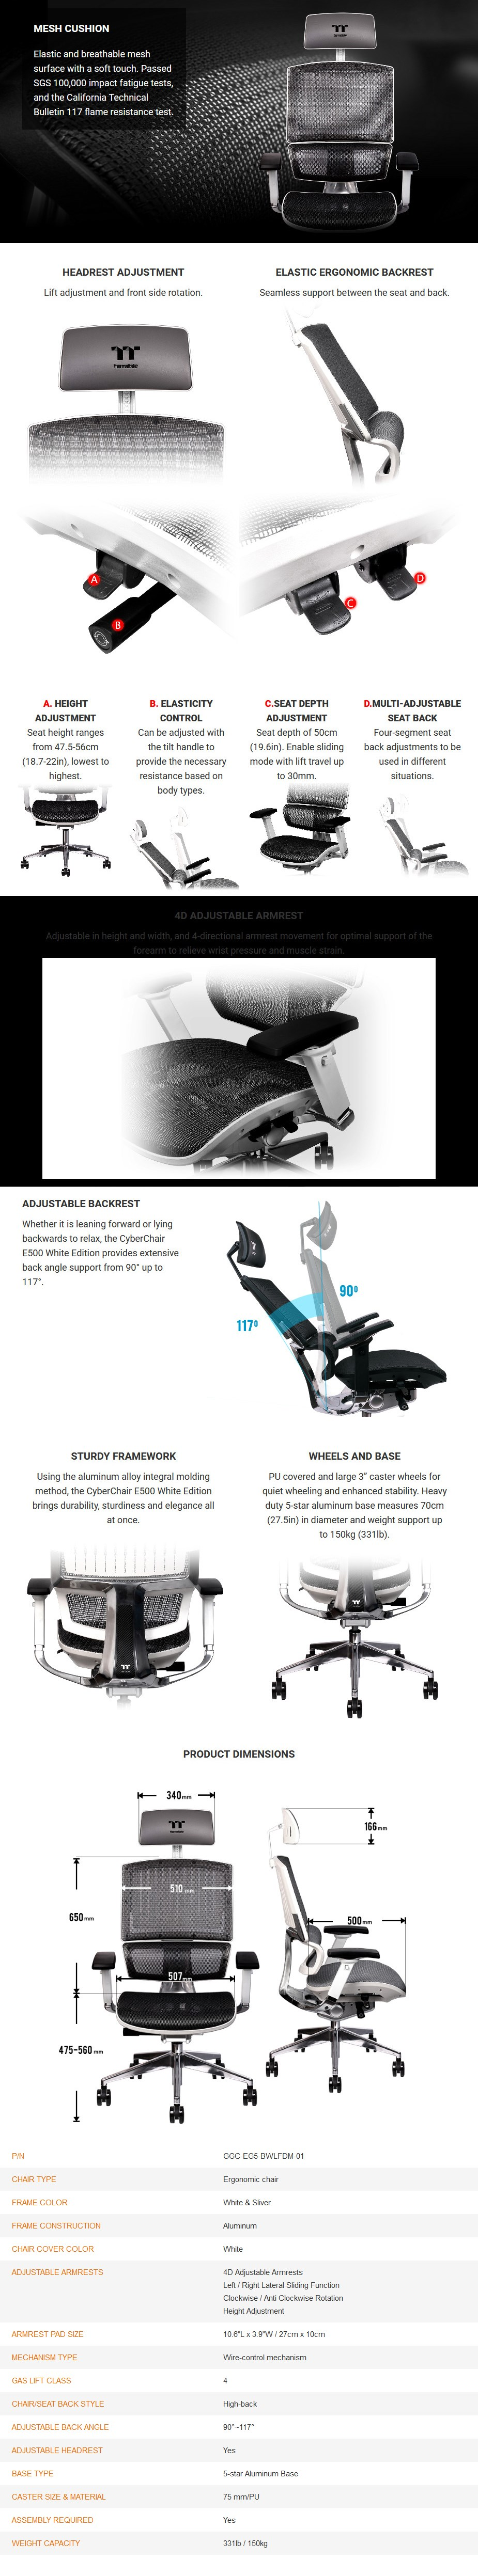 Thermaltake CyberChair E500 Ergonomic Office/Gaming Chair - White - Overview 1